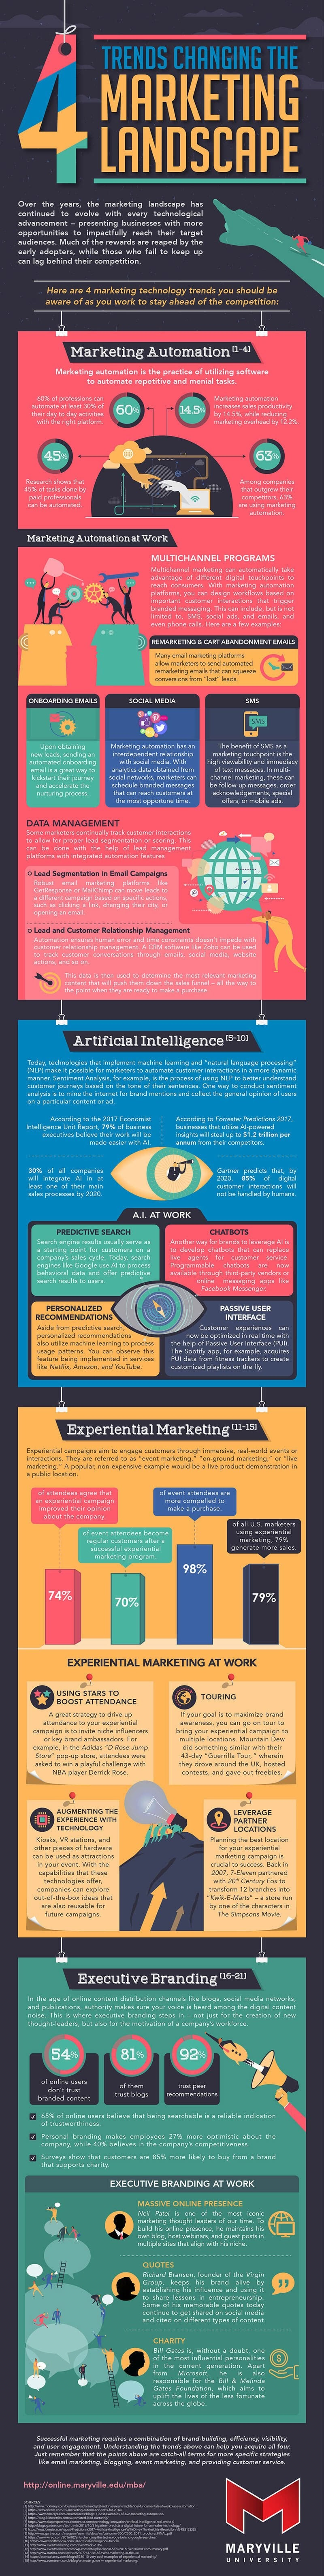 4 Trends Changing the Marketing Landscape #infographic